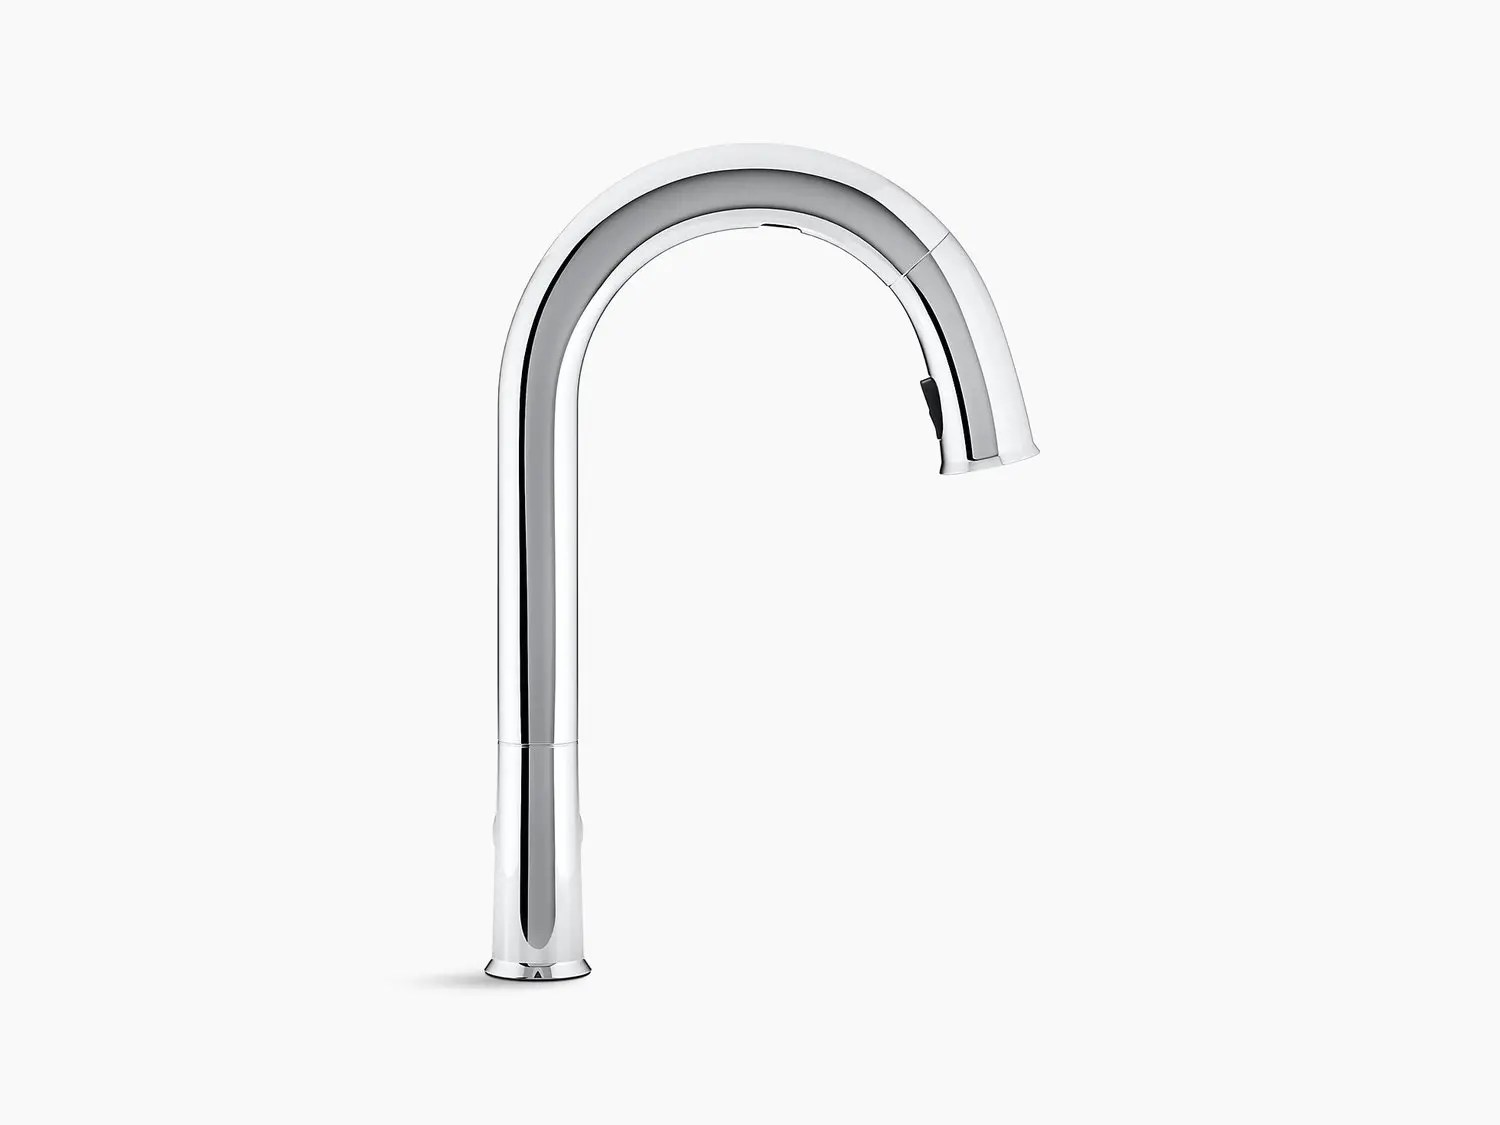 oil rubbed bronze touchless kitchen faucet with 15 1 2 pull down spout docknetik magnetic docking system and a 2 function sprayhead featuring the